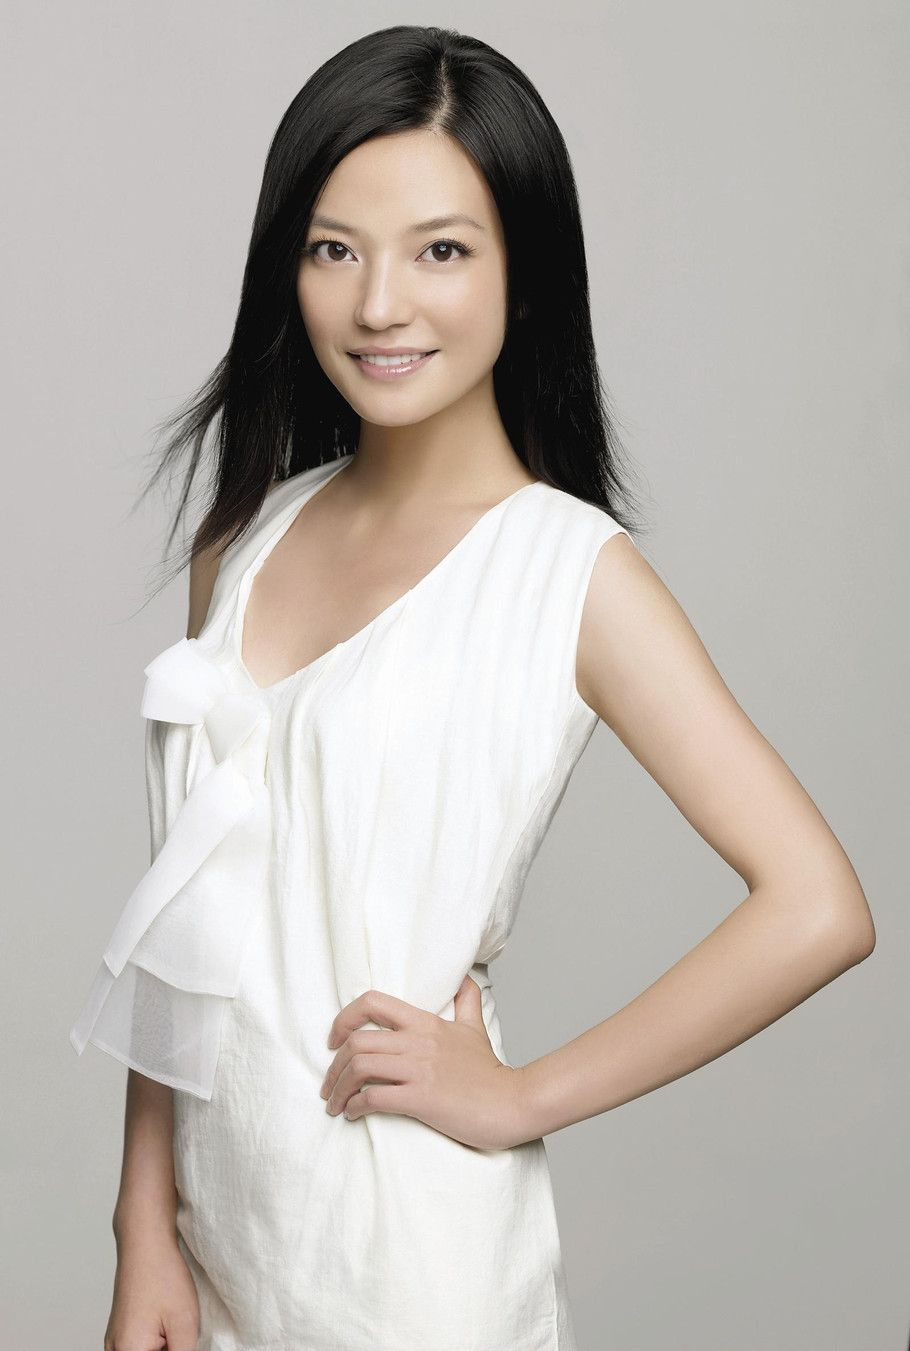 Watch Zhao Wei video